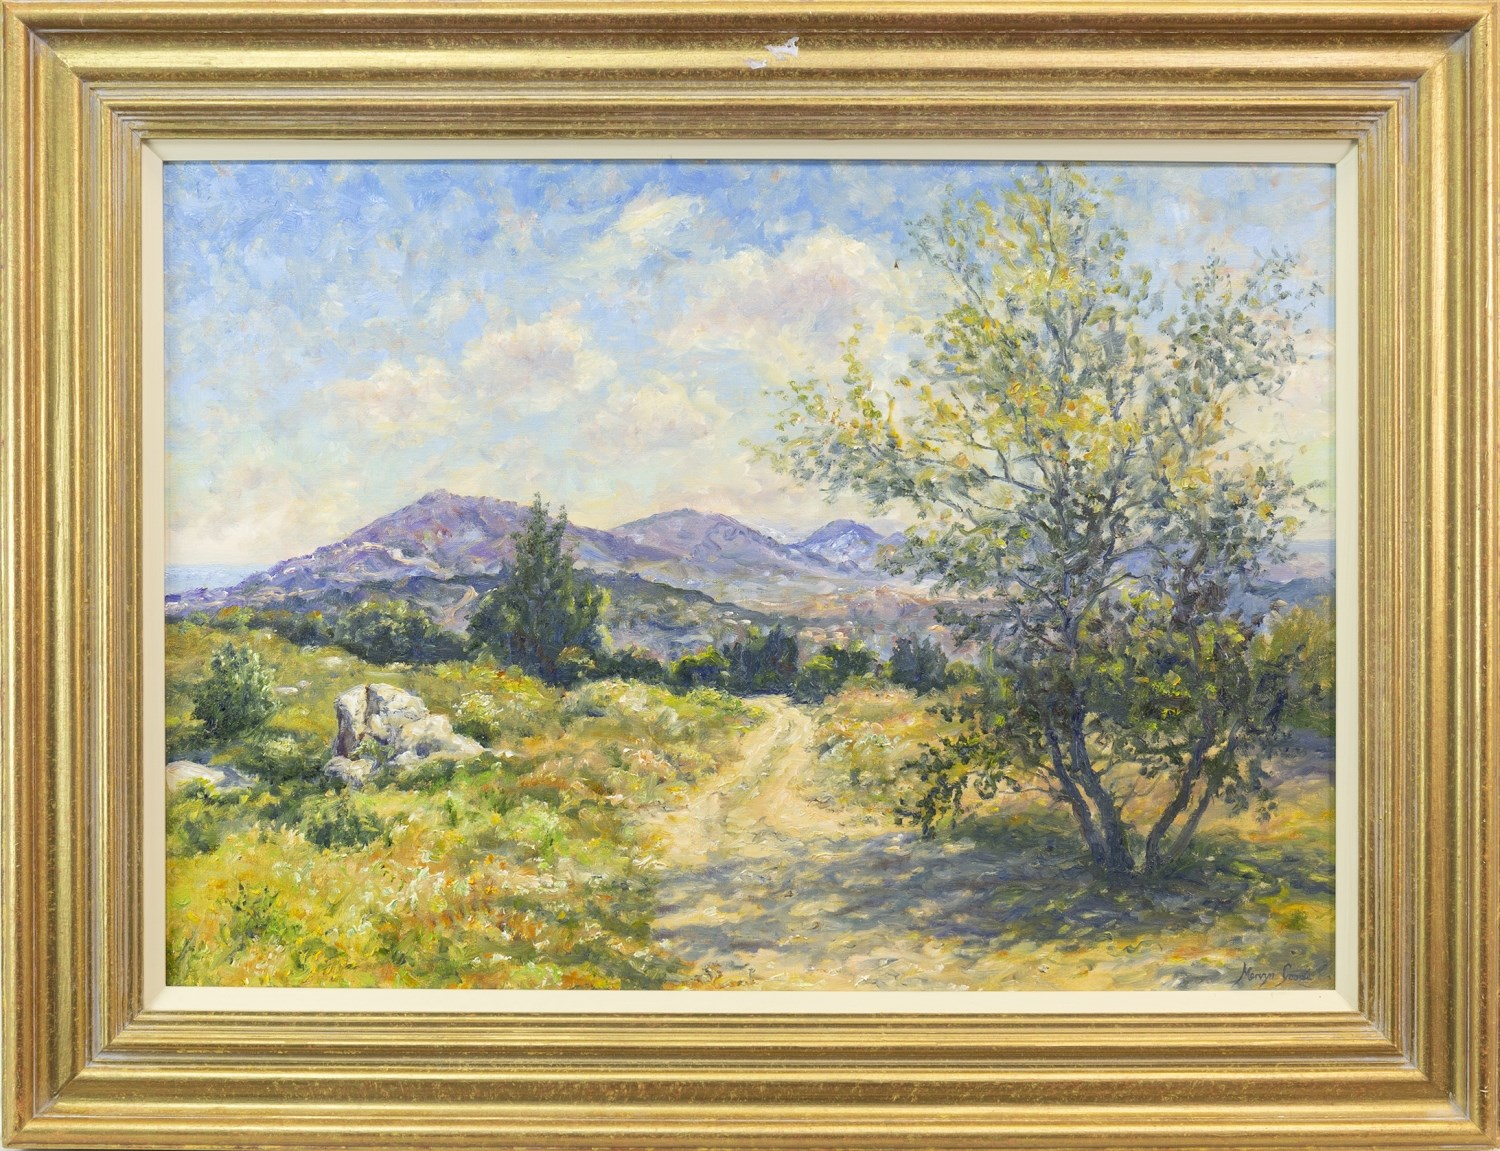 Lot 30 - BLUE MEDITERRANEAN HILLS, BY MERVYN GOODE